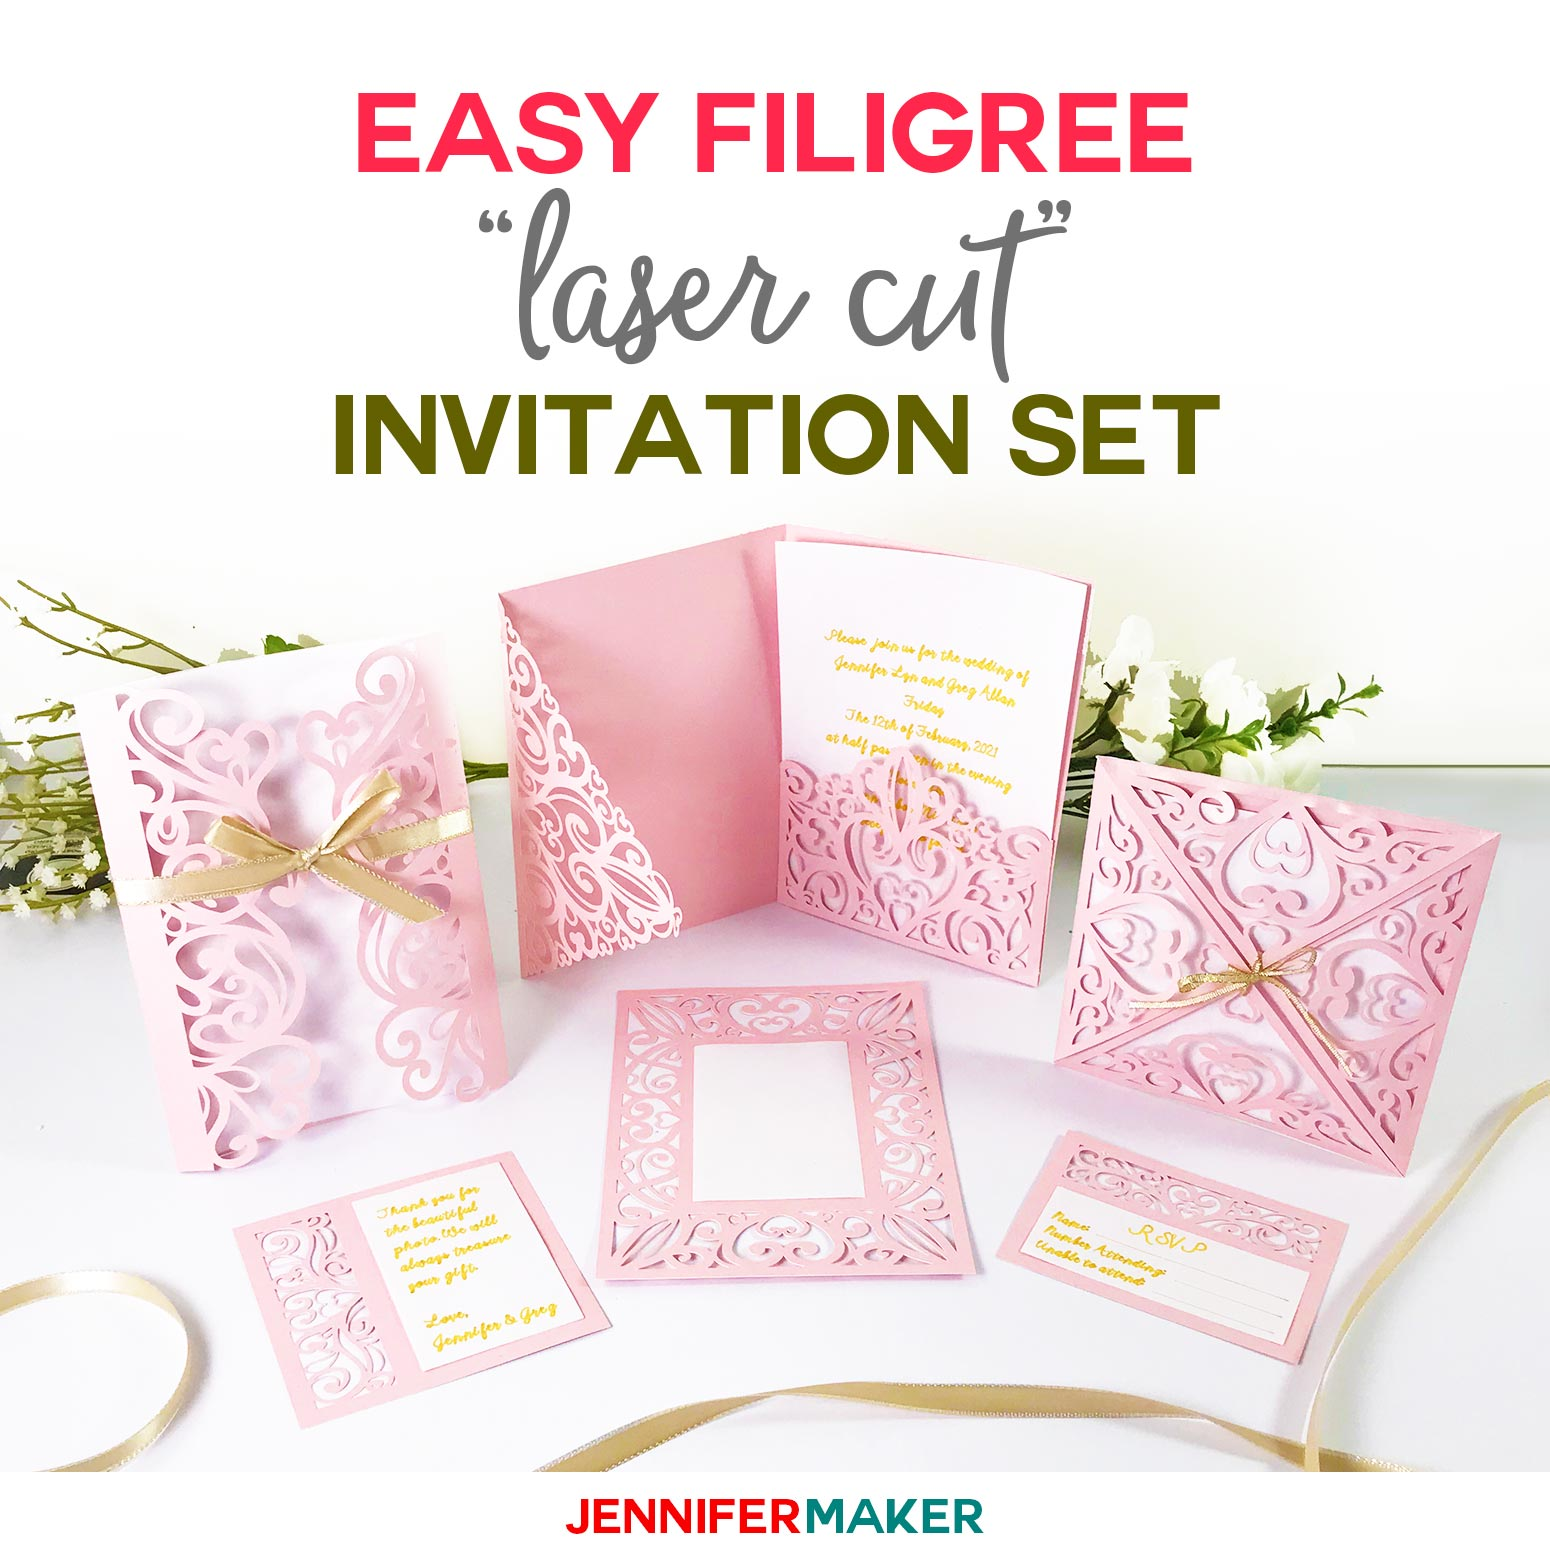 Diy Wedding Invitation Templates Free Laser Cut Set Jennifer Maker